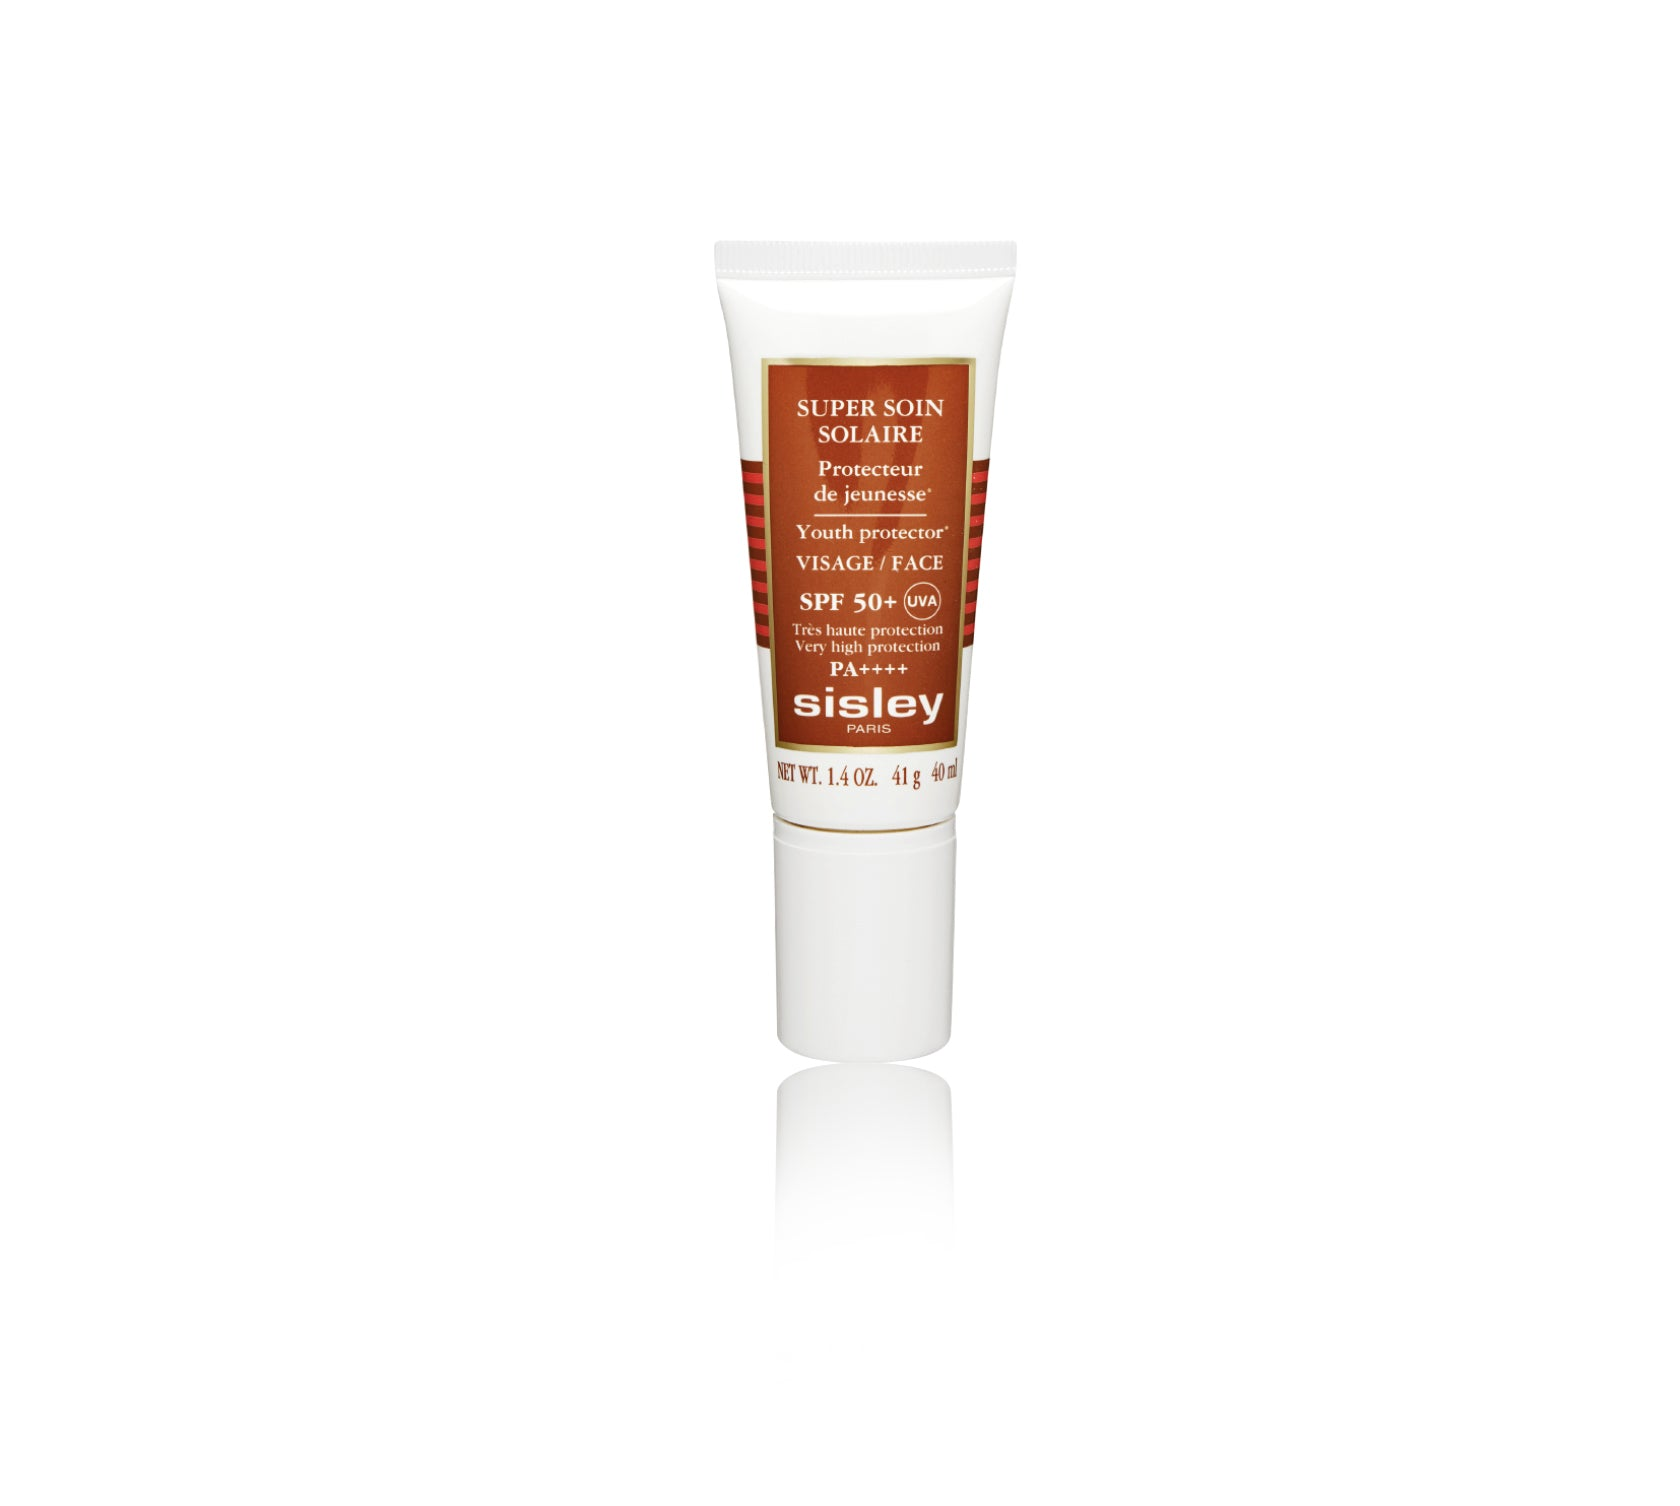 Super Soin Solaire Youth Protectors Face SPF 50+ PA++++